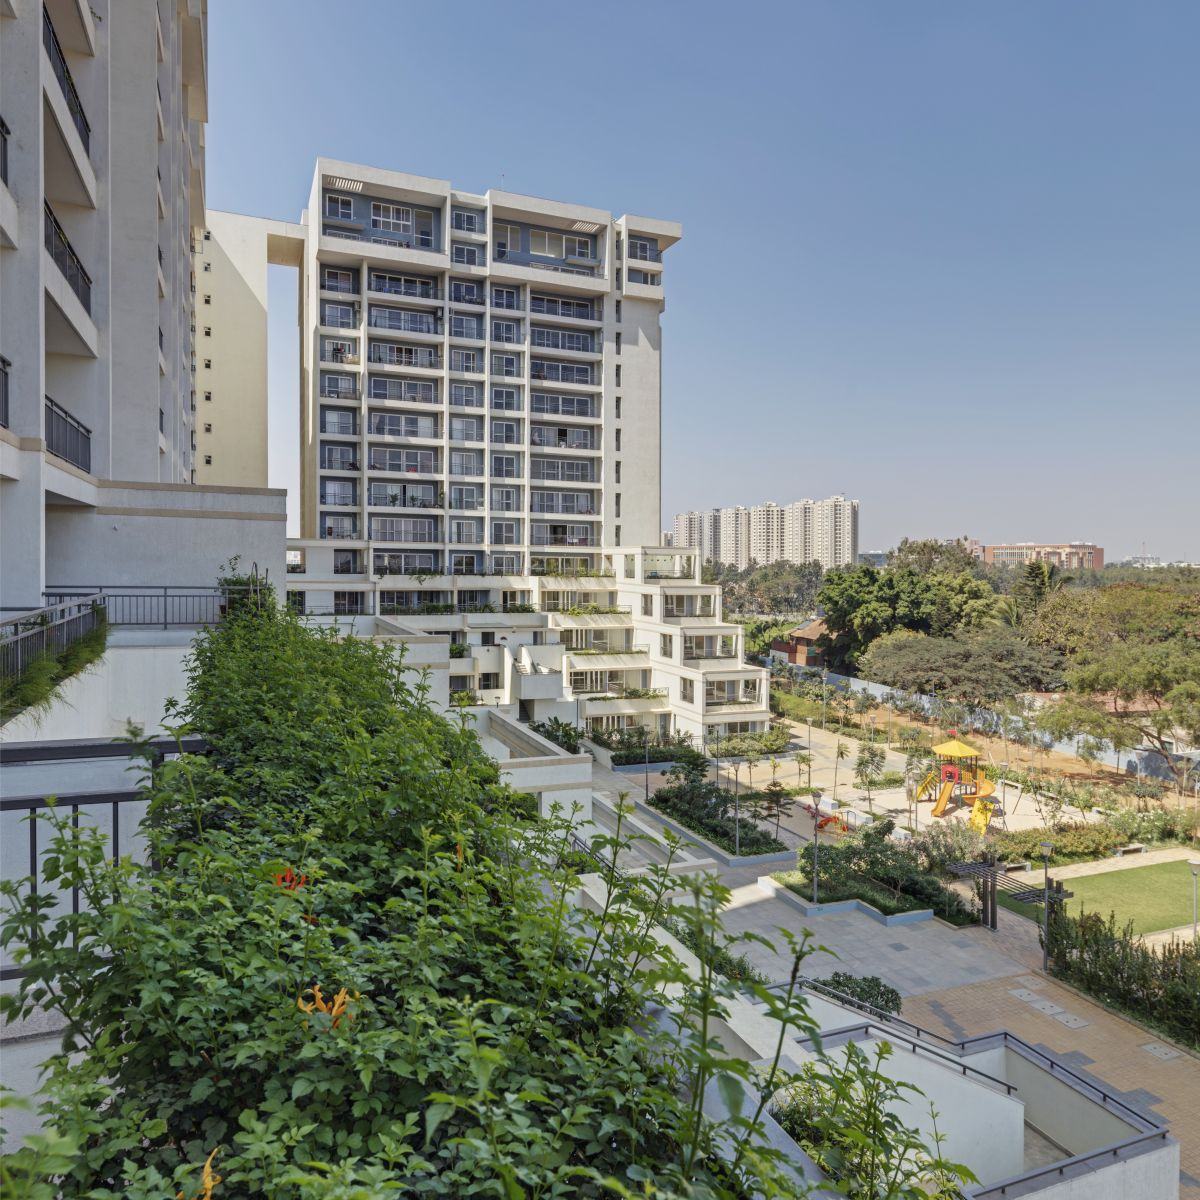 Terraced Residential Highrise, at Nallurhalli Road, Siddhapura, Bangalore, by CnT Architects 10